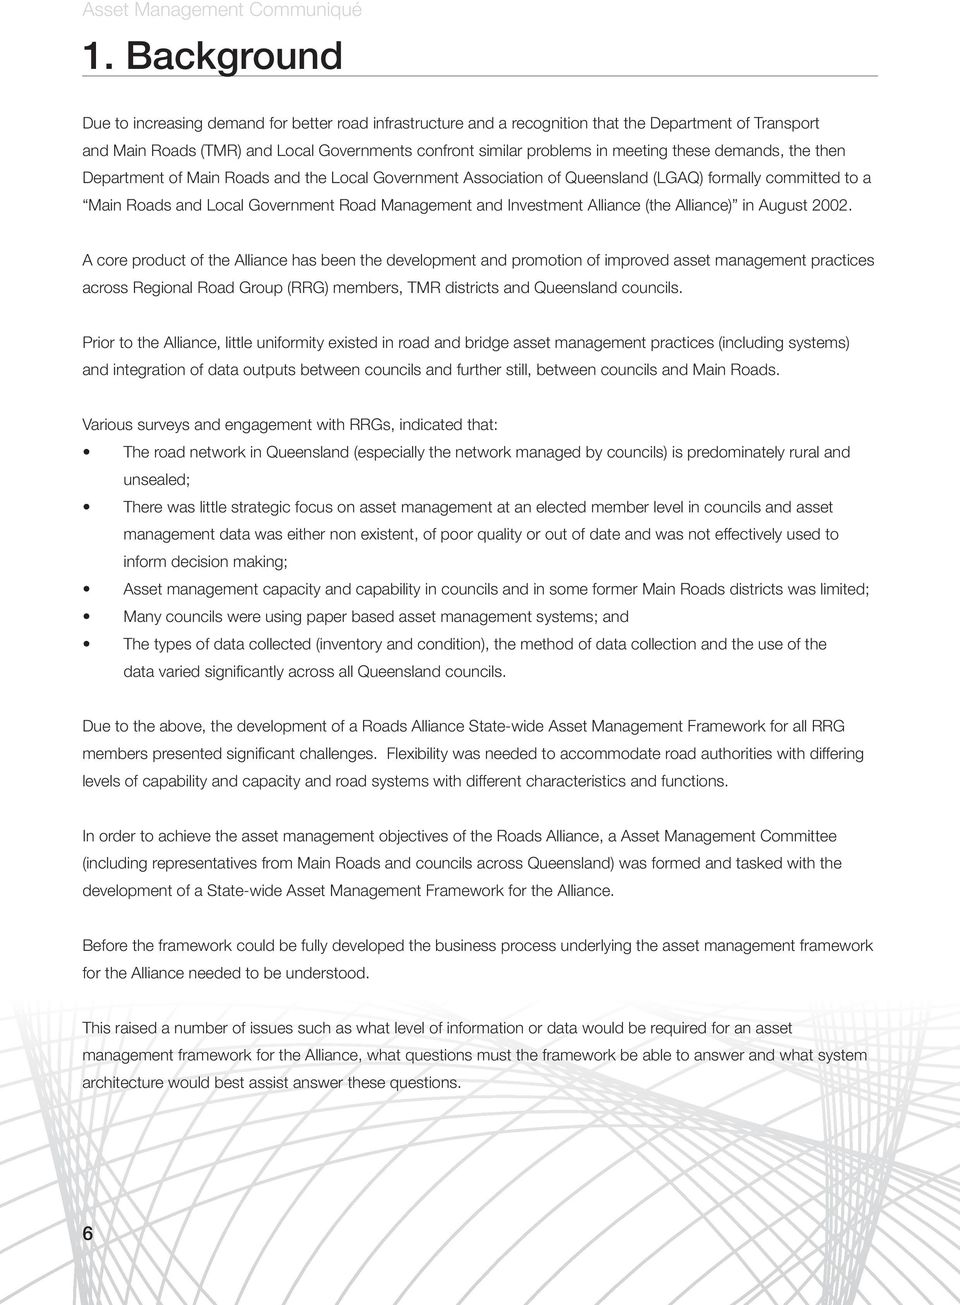 these demands, the then Department of Main Roads and the Local Government Association of Queensland (LGAQ) formally committed to a Main Roads and Local Government Road Management and Investment